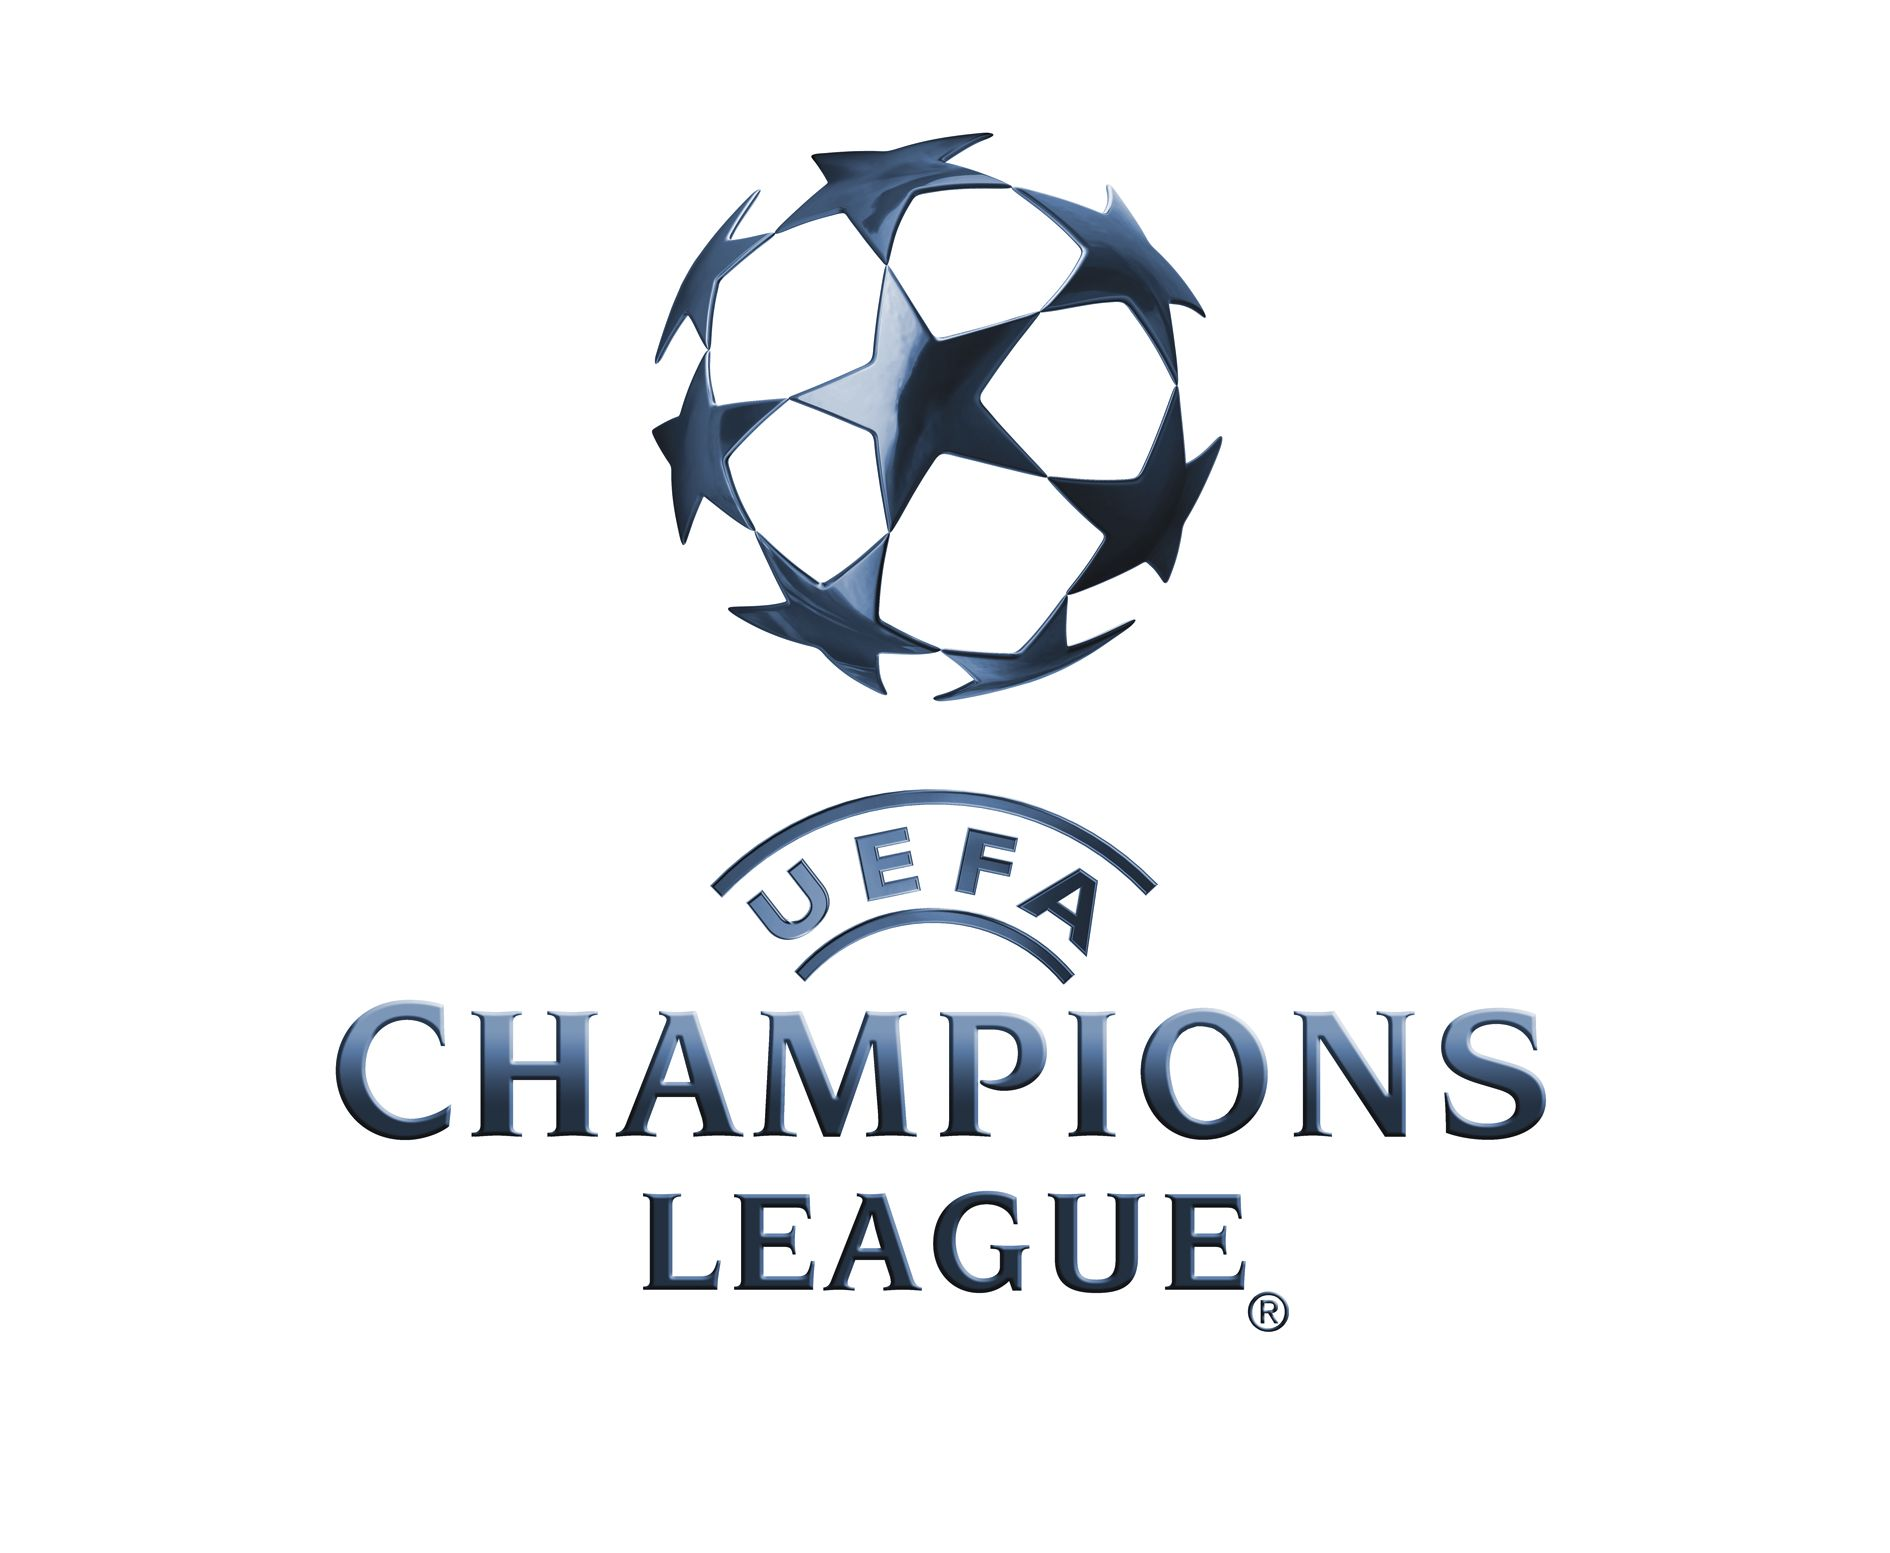 UEFA Champions League: UEFA Champions League Returns To Action